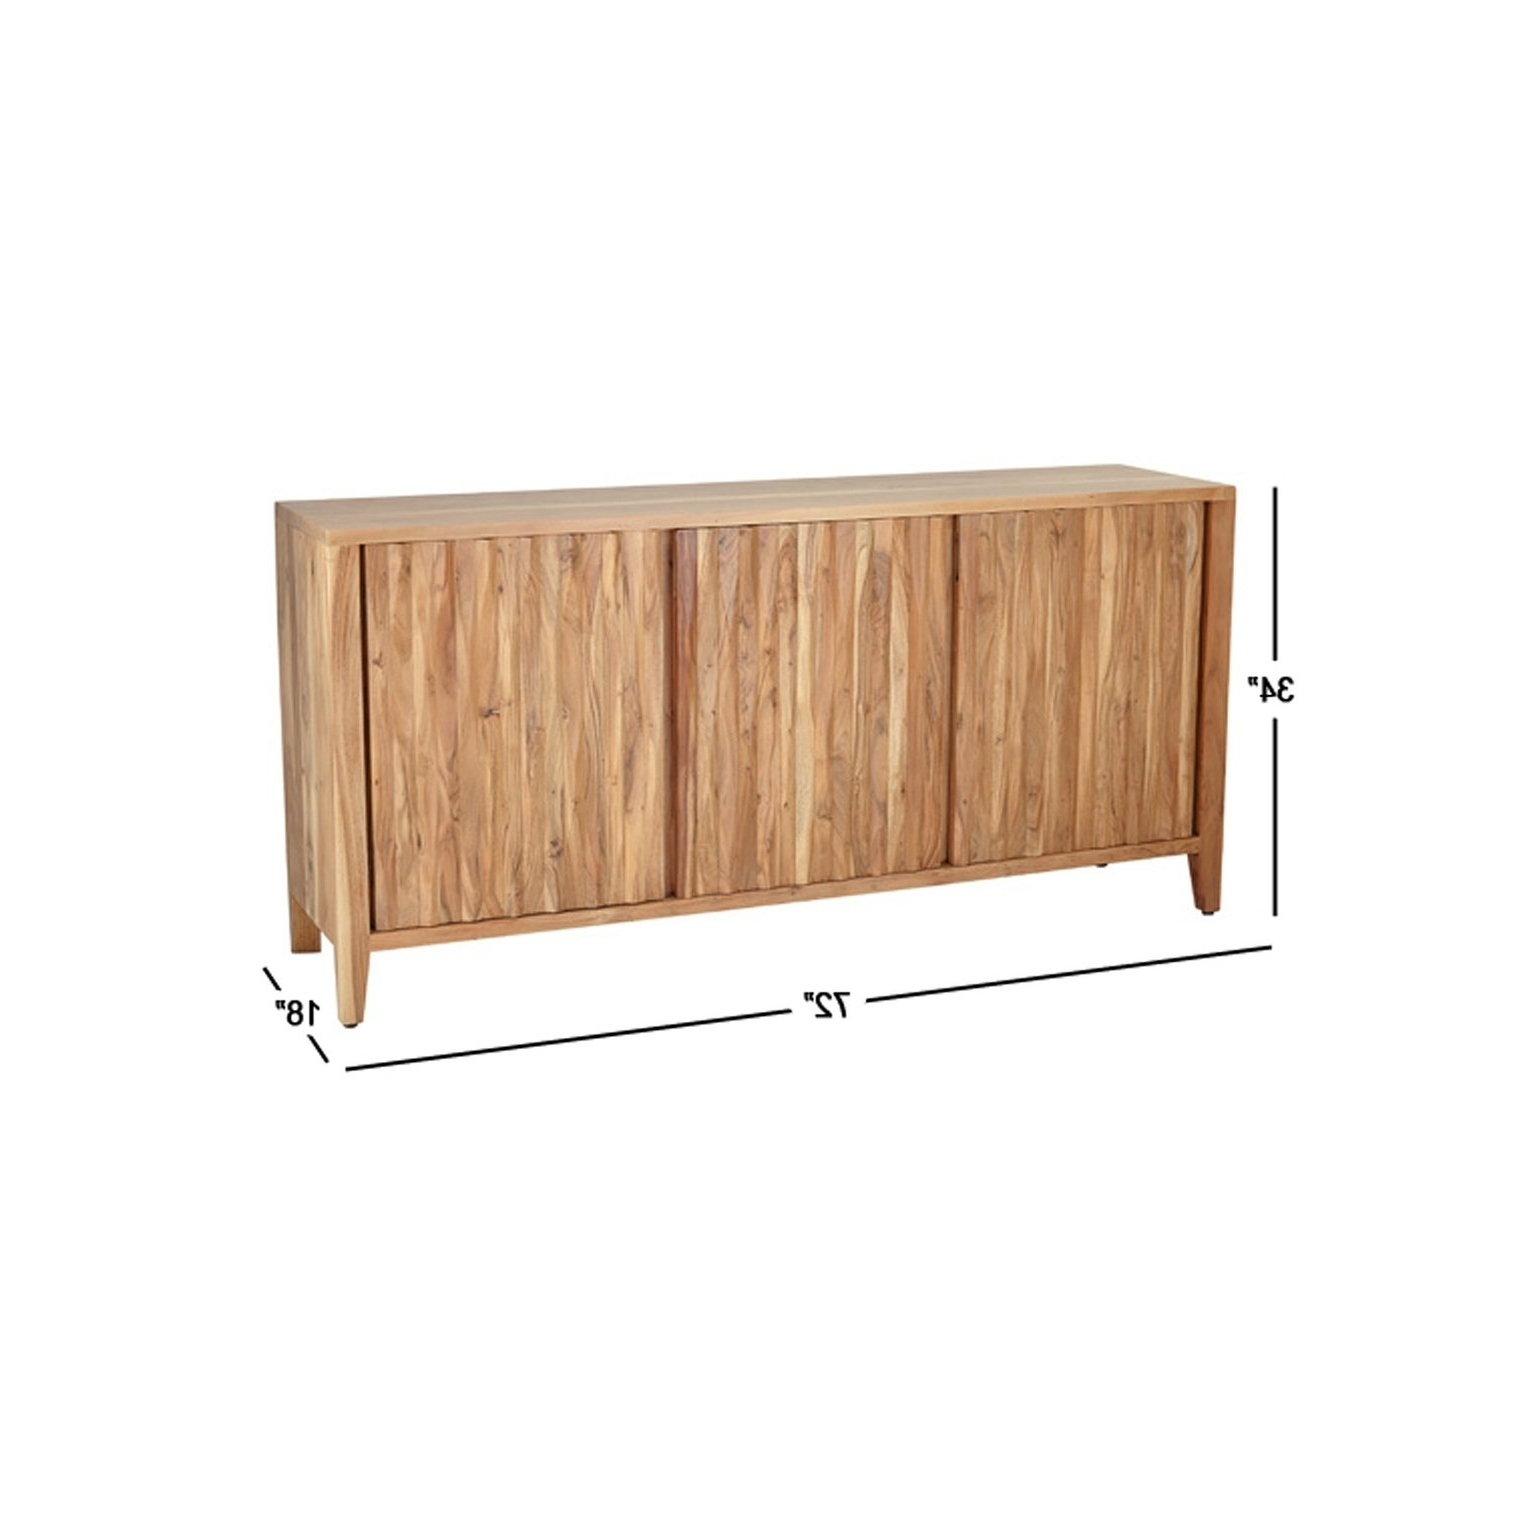 Well Known Brown Wood 72 Inch Sideboards Throughout Shop Rustic 34 X 72 Inch Brown Wooden Three Door Sideboard – On Sale (View 20 of 20)